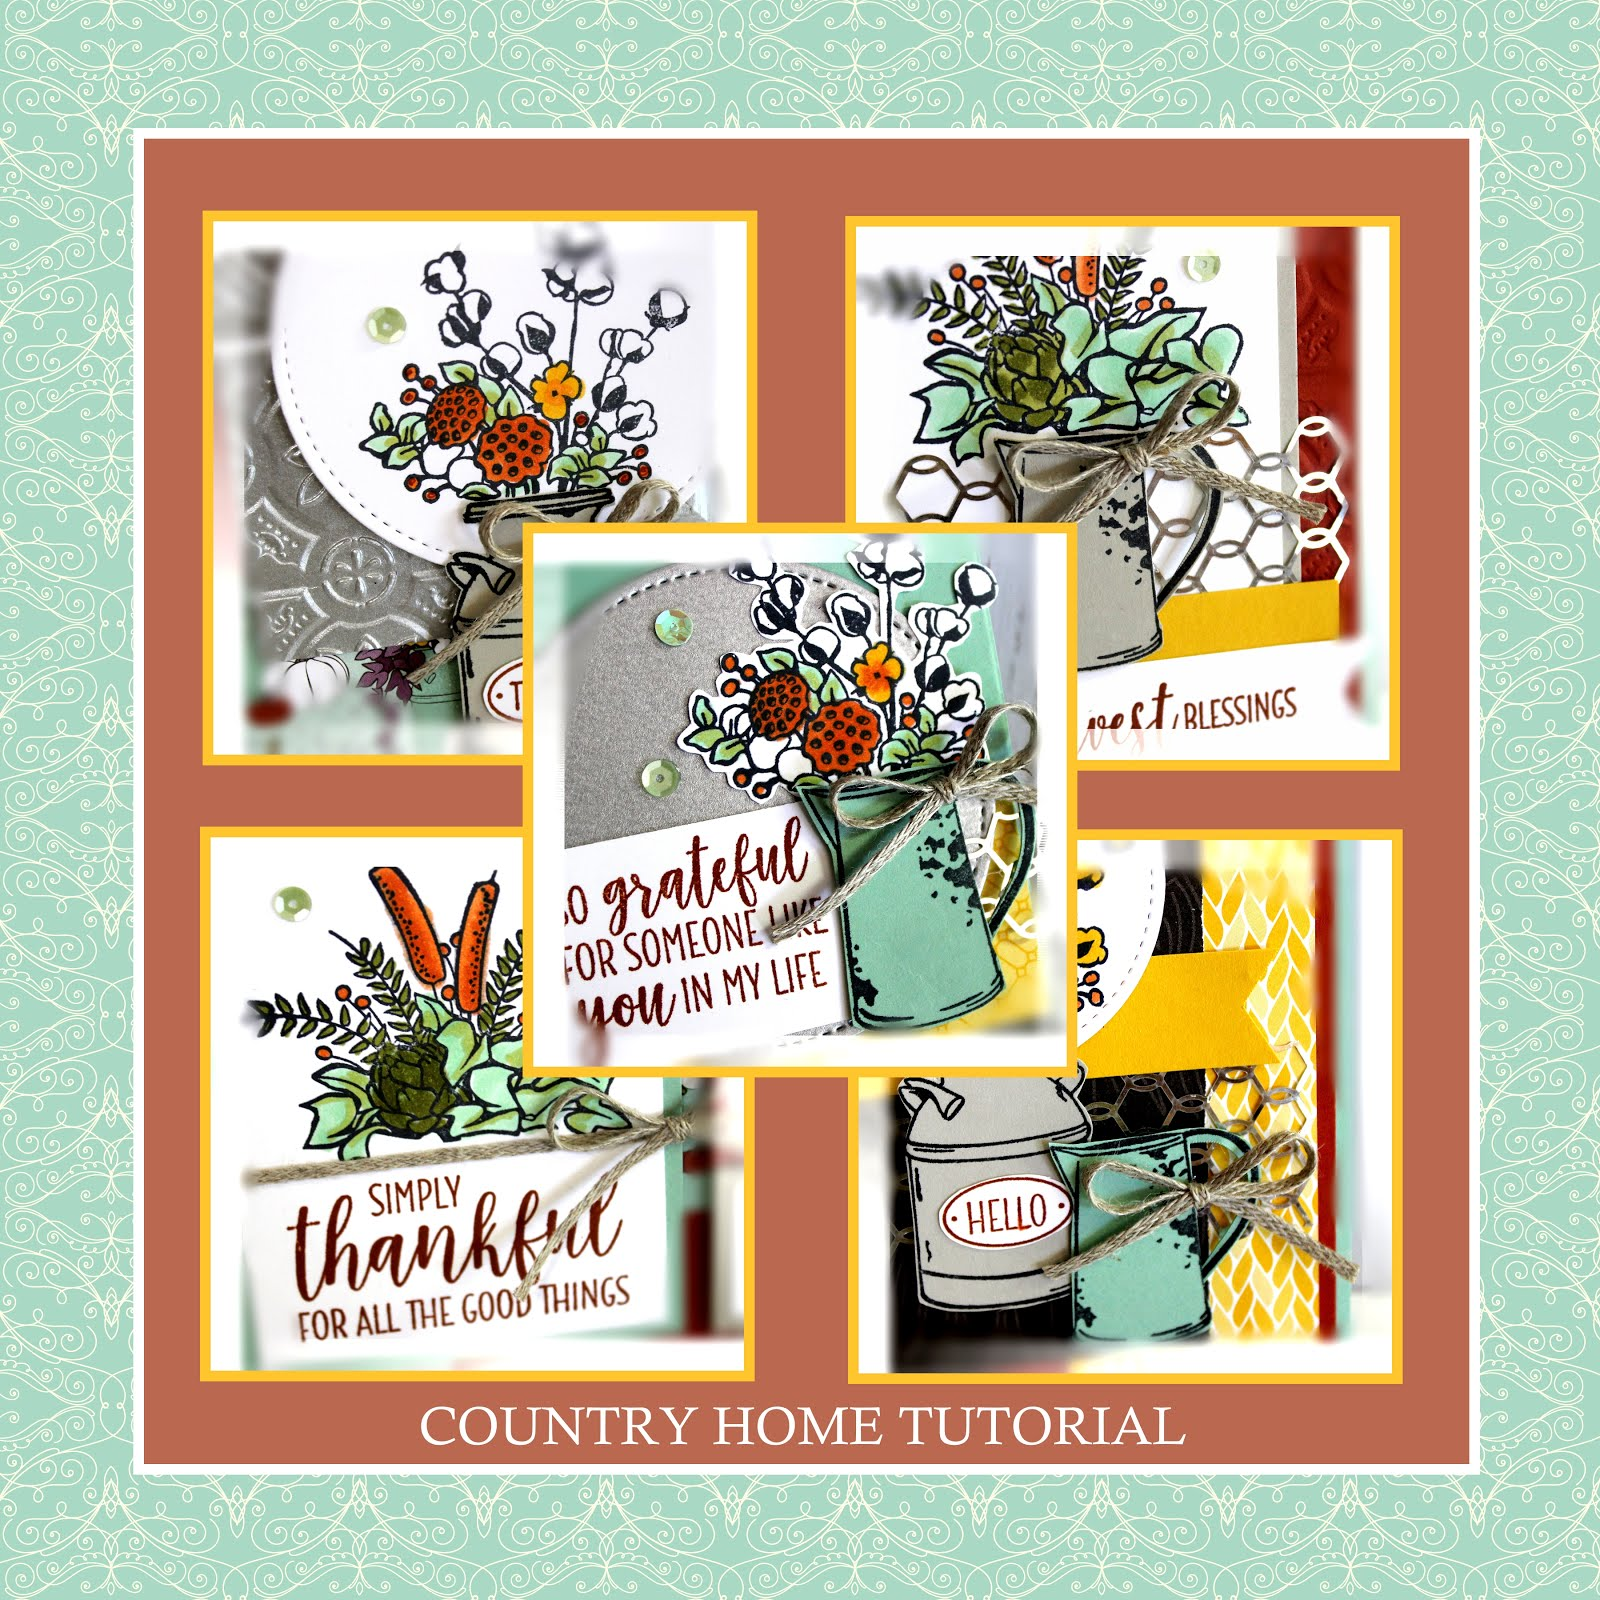 October 2018 Country Home Tutorial